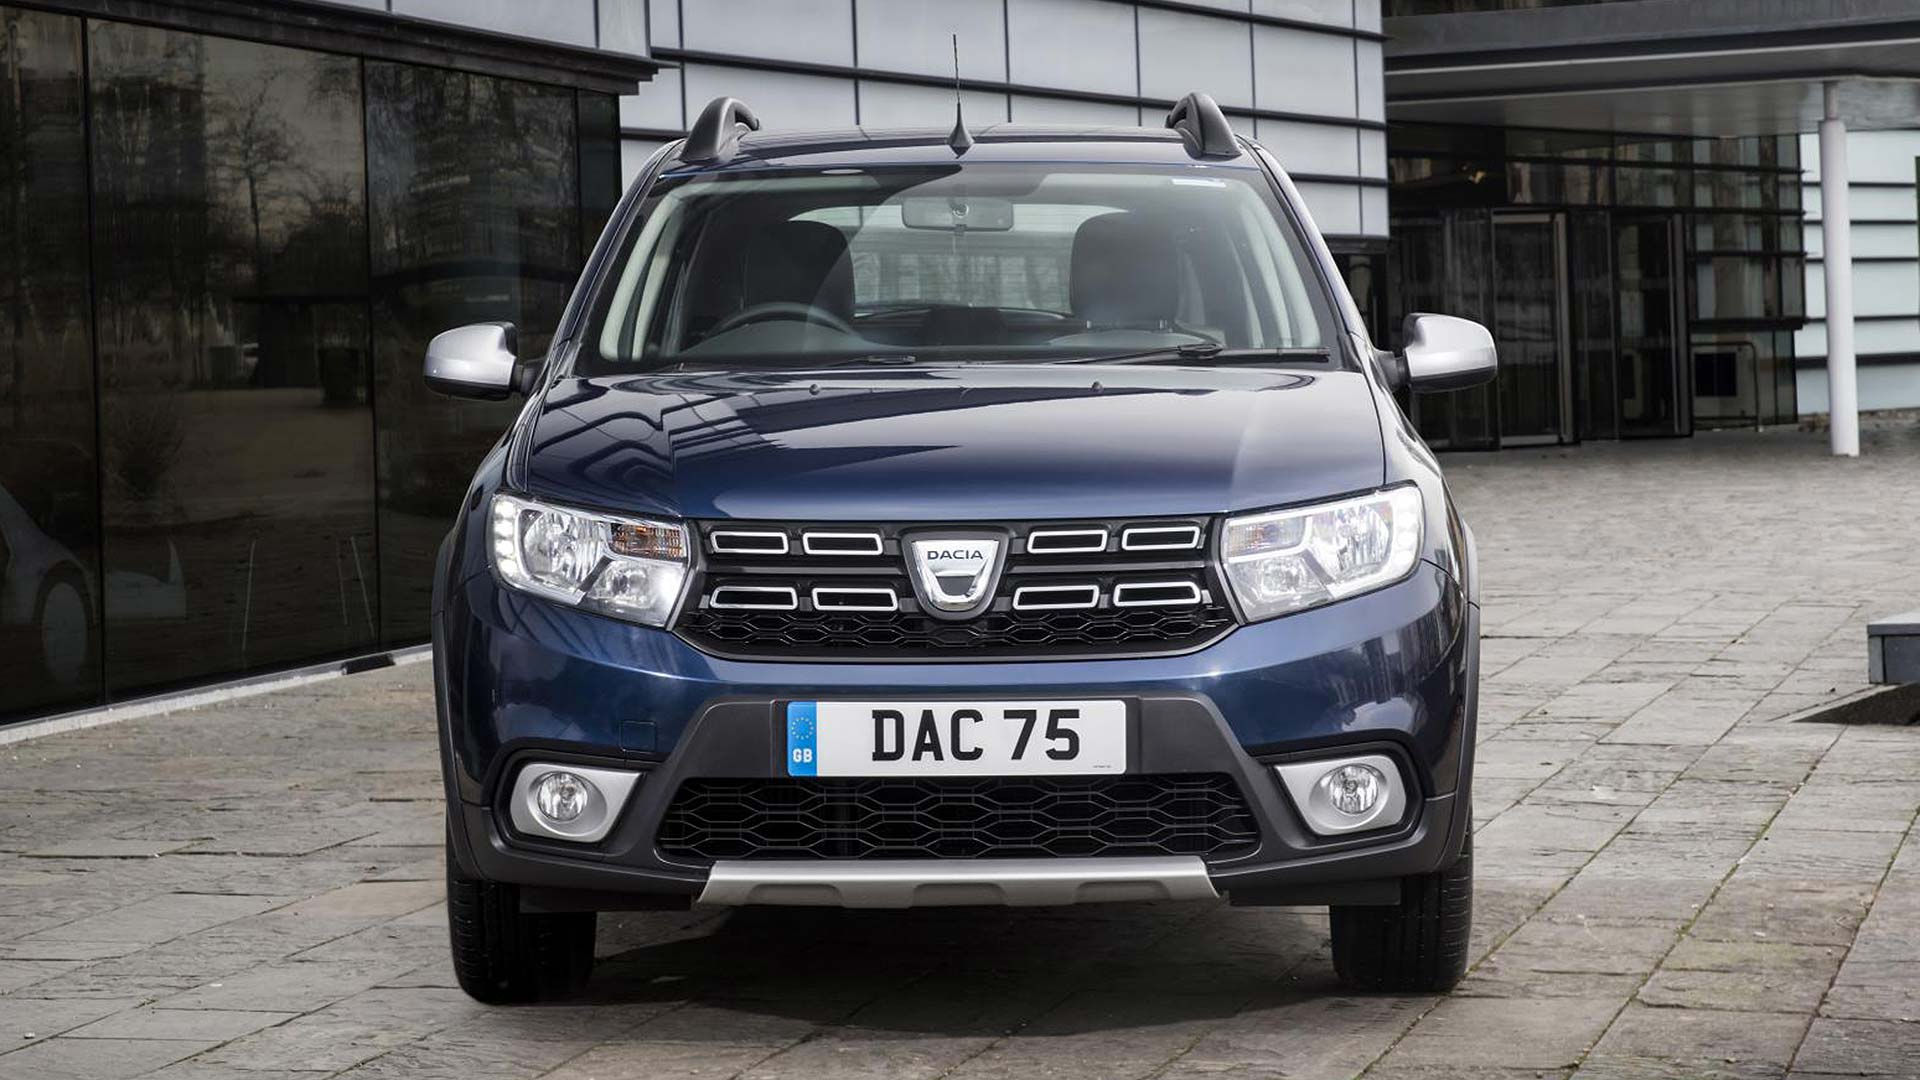 dacia sandero stepway gets essential value for 2019 motoring research. Black Bedroom Furniture Sets. Home Design Ideas